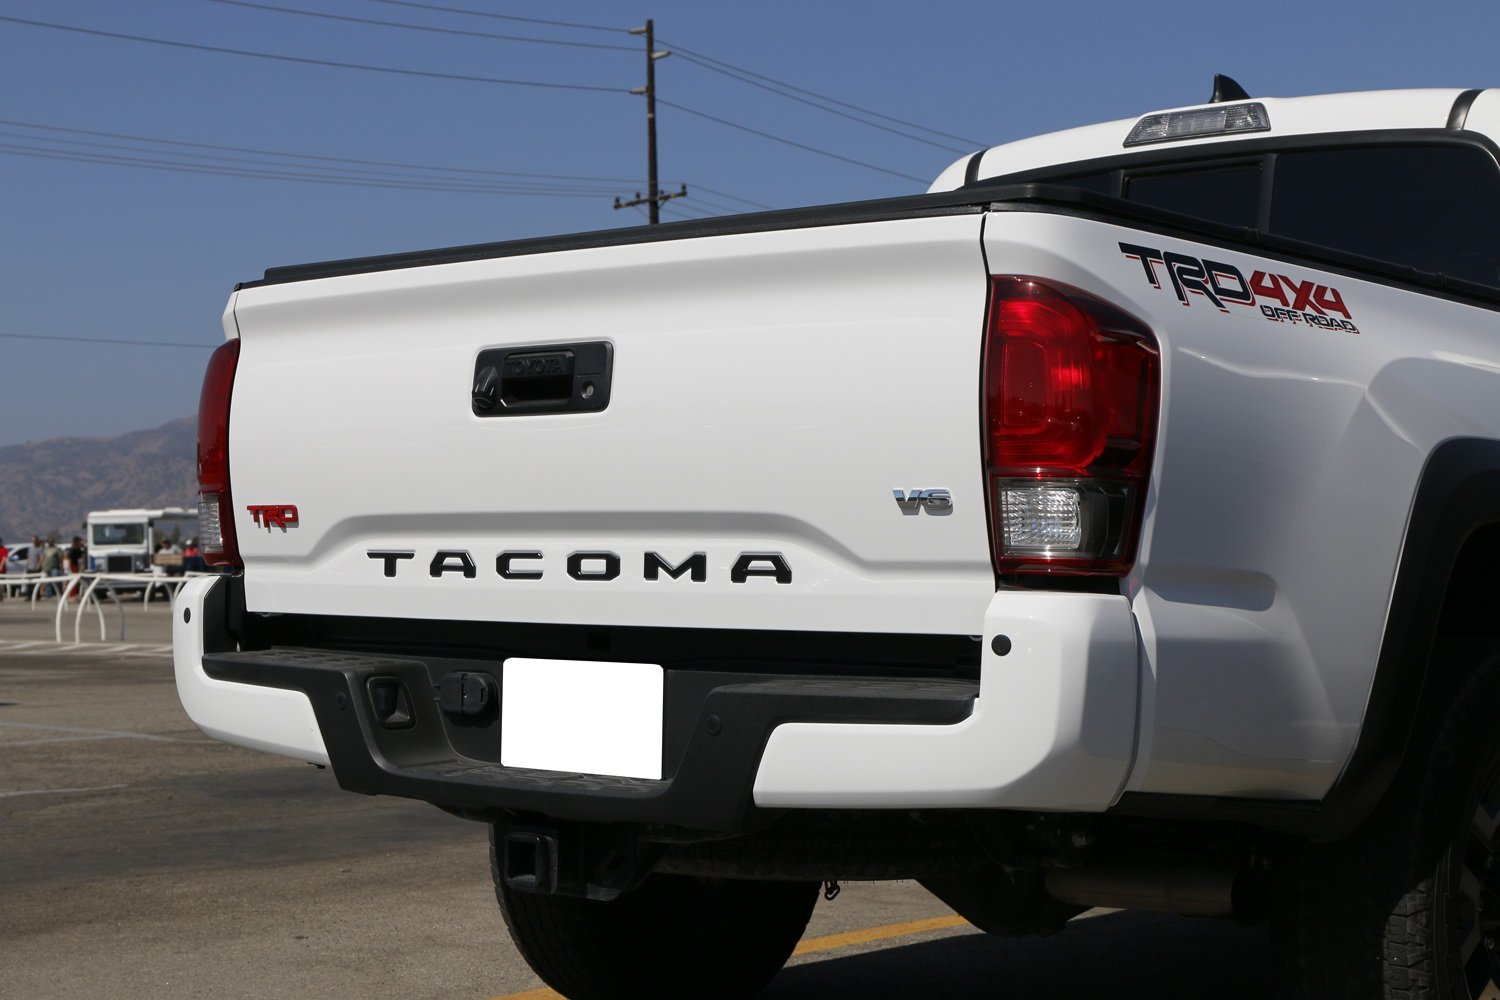 JDMTOY Black Finish 3D 6pcs Tailgate Letter Inserts For 2016-up Toyota Tacoma Made w//1.5mm Hard Plastic not A Paper Decal